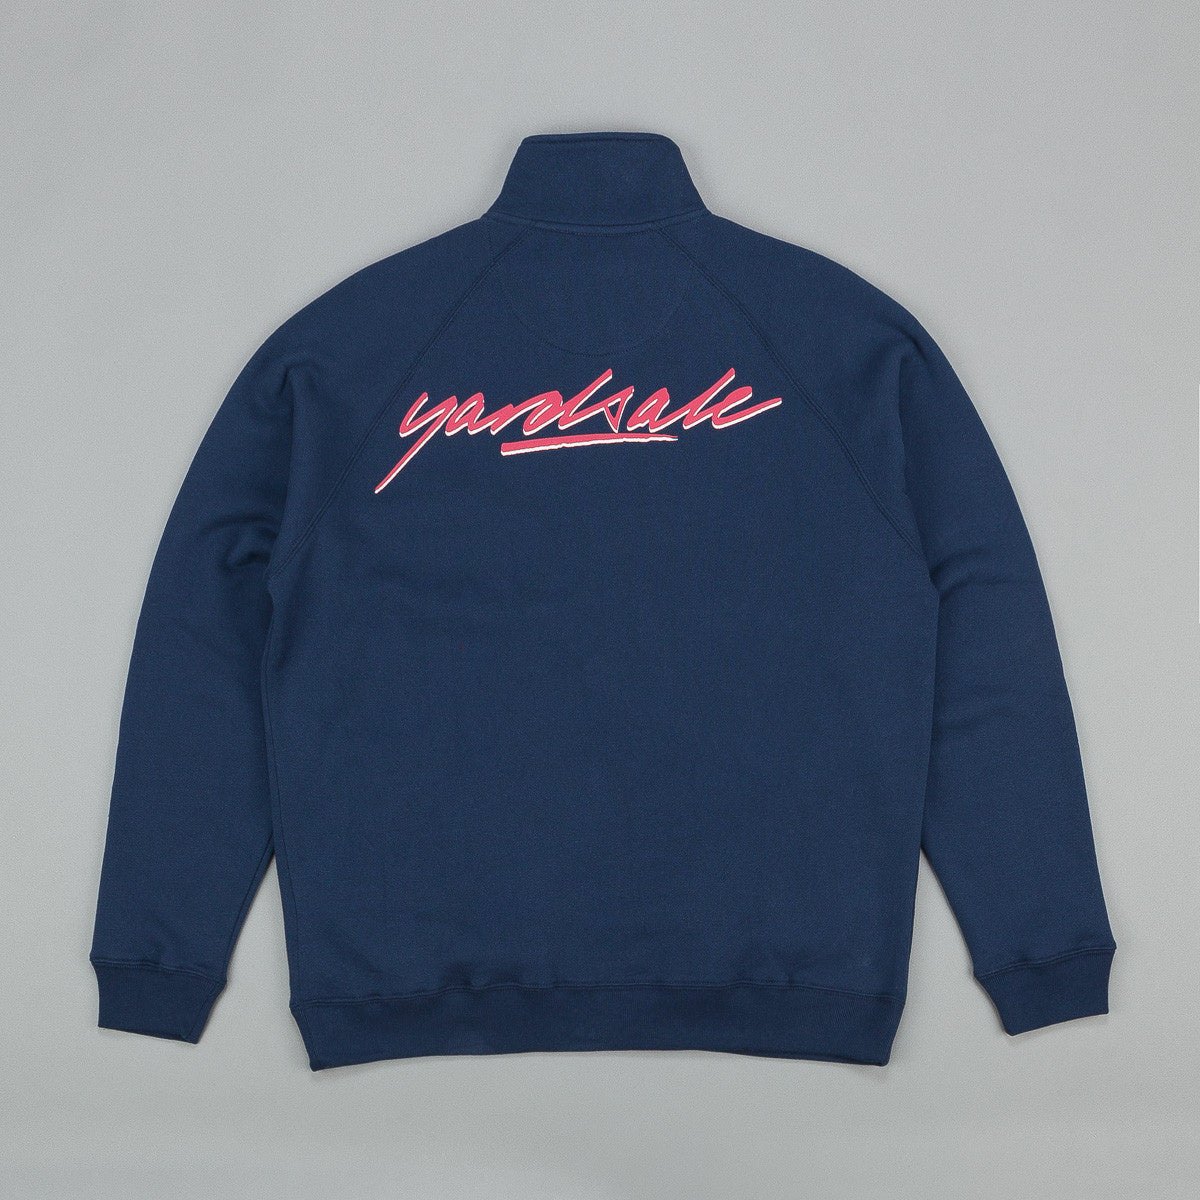 Yardsale Full Zip Sweatshirt - Midnight Blue